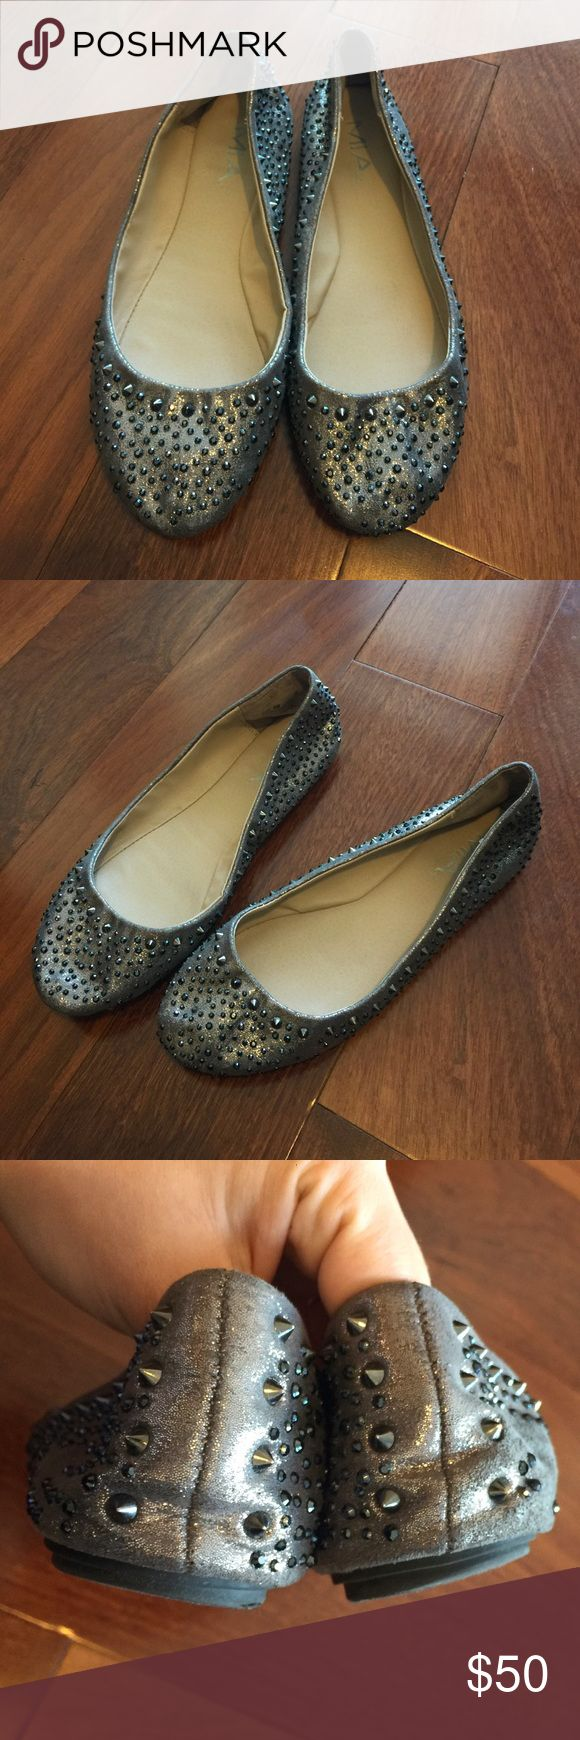 MIA 'Barracuda' Spiky Studded Ballet Flats Pre-owned; in good condition. 'Barracuda' studded spiky ballet flats by MIA. Silver/grey. Textile upper, textile outsole. Size 9. MIA Shoes Flats & Loafers